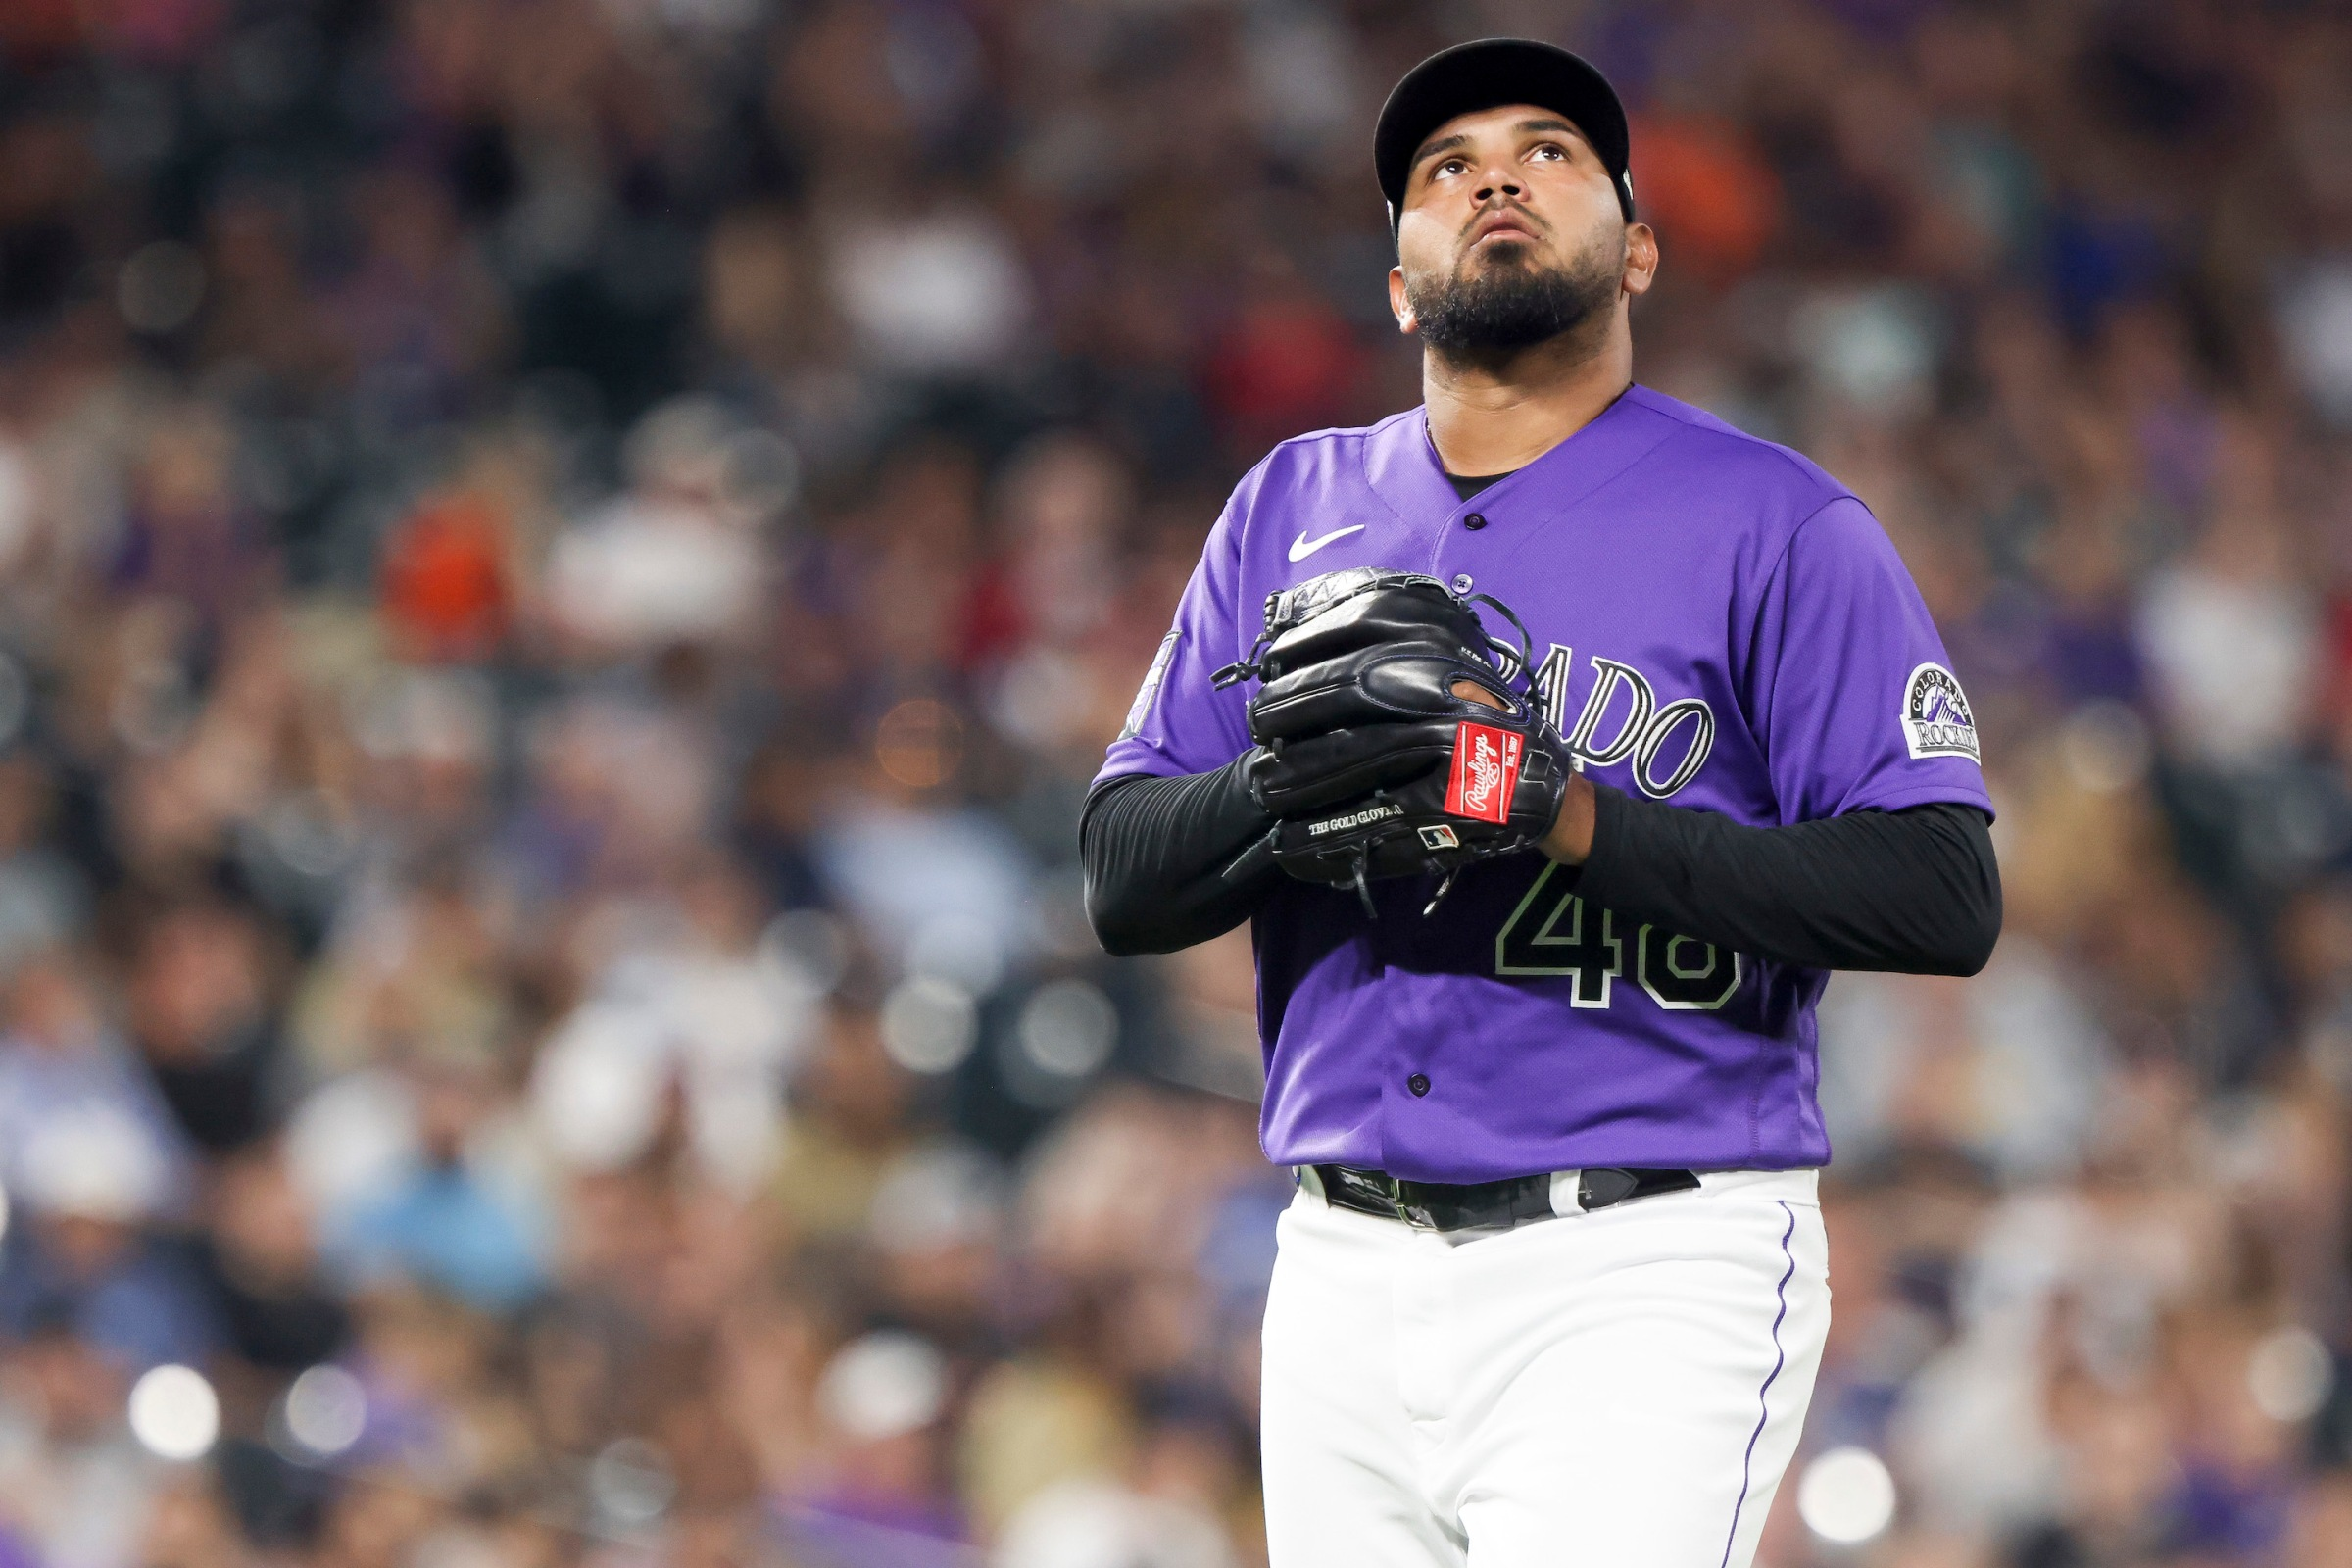 German Marquez #48 of the Colorado Rockies leaves the game after allowing three home runs by the San Diego Padres during the seventh inning at Coors Field on August 17, 2021 in Denver, Colorado.